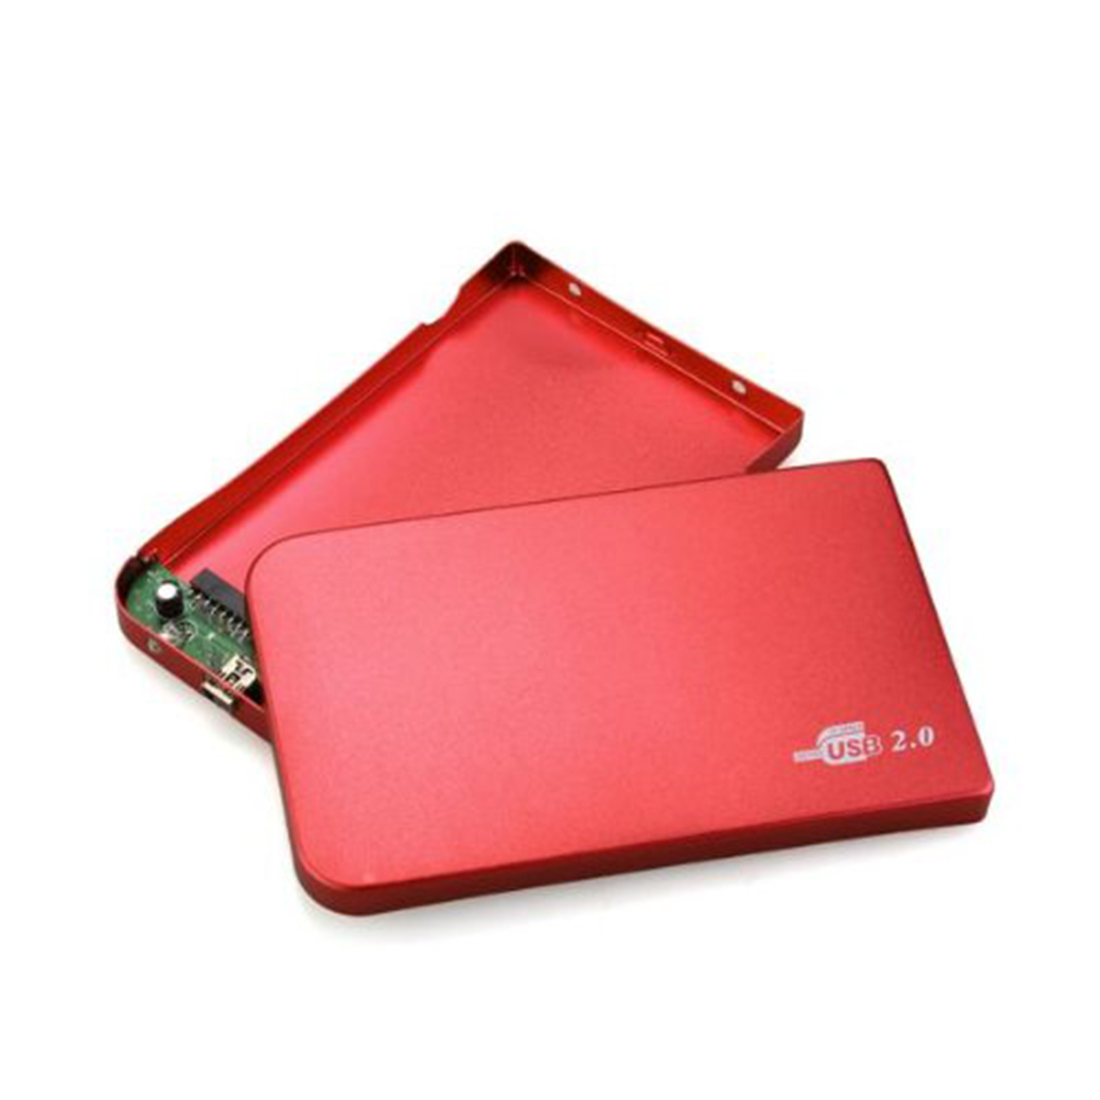 [The goods stop production and no stock]2.5 hard drive, Red External Hard Drive Disk Enclosure 2.5 Inch Usb 2.0 Ide